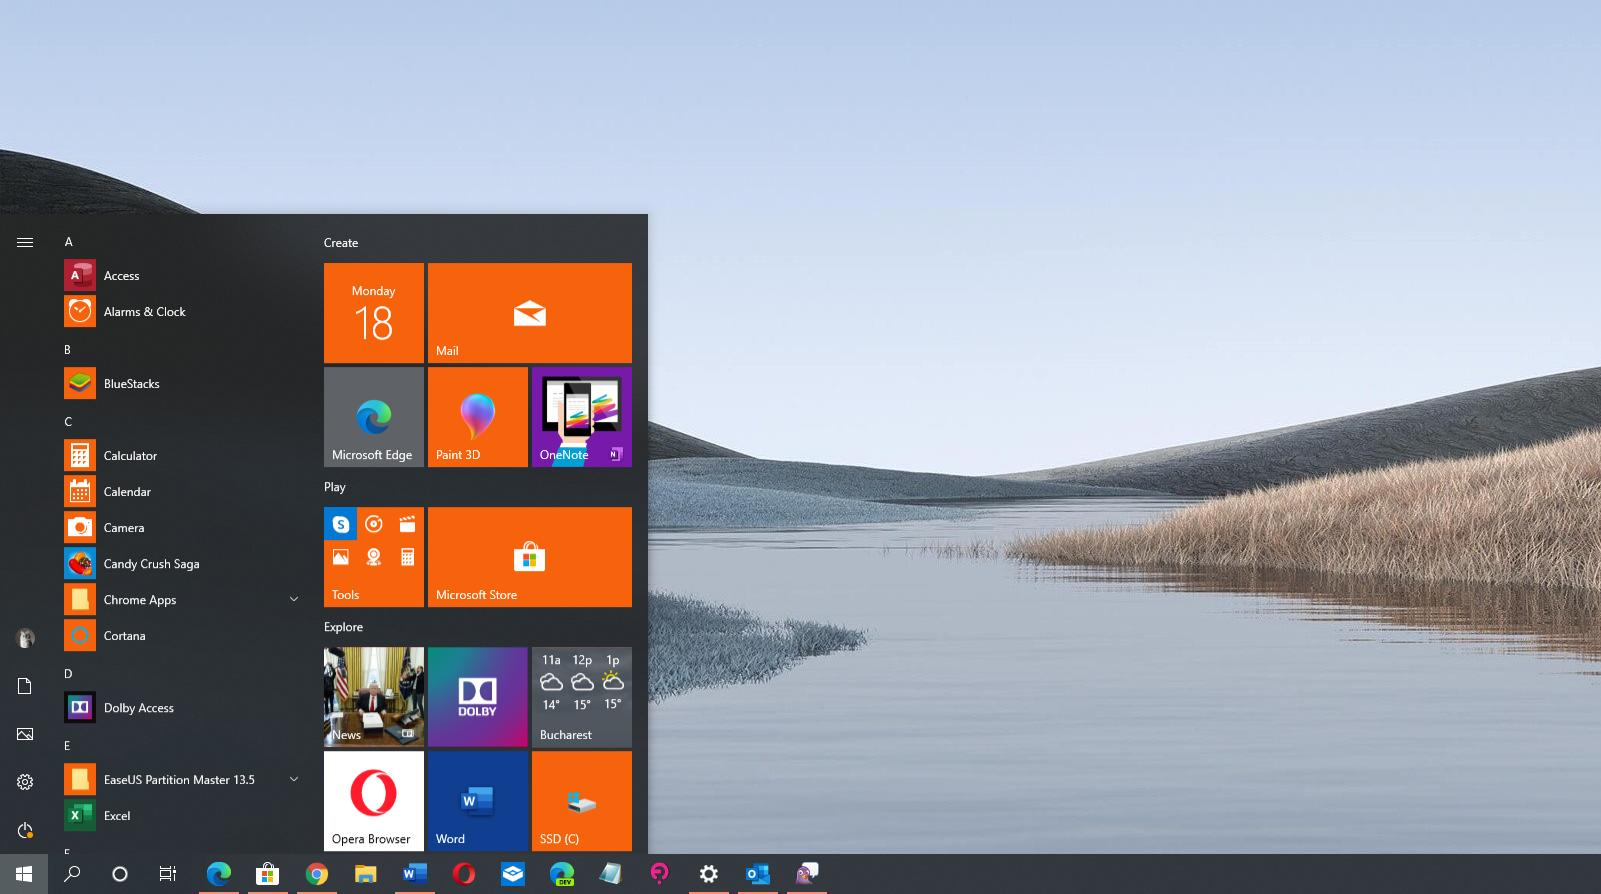 come scaricare copia windows 10 gratis legalmente